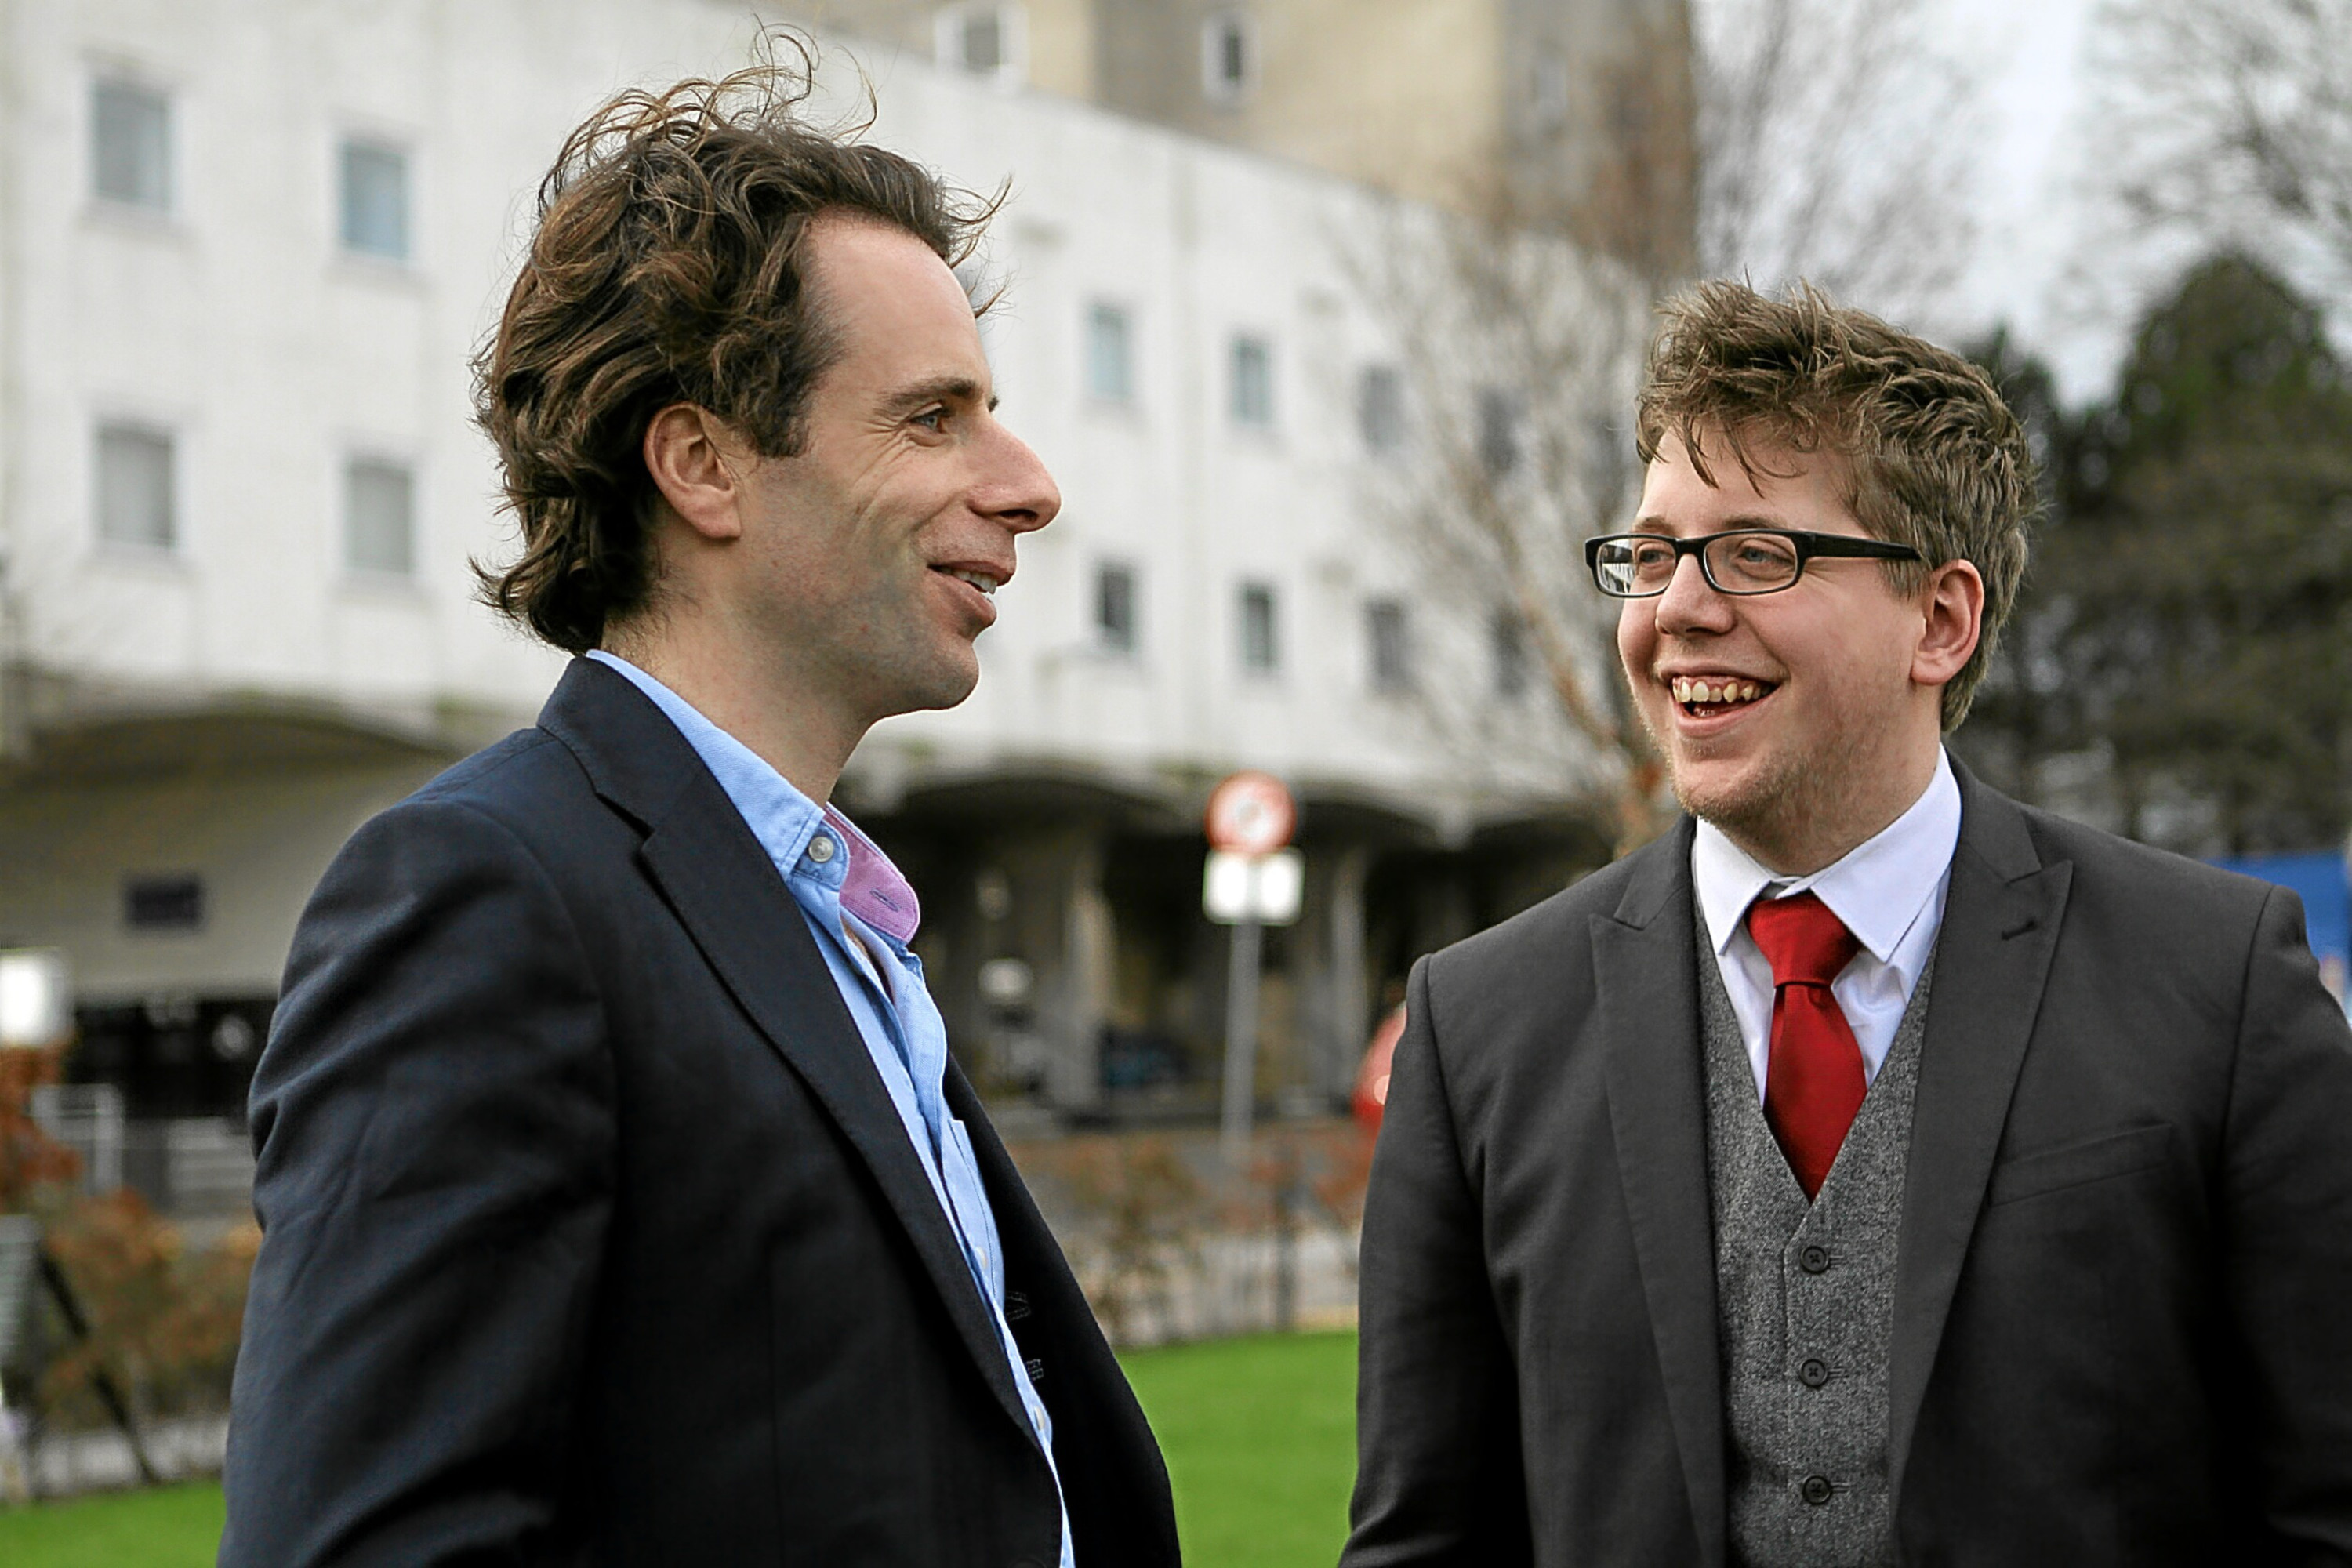 Mark Beaumont chatting with Tim Hustler - president of DUSA